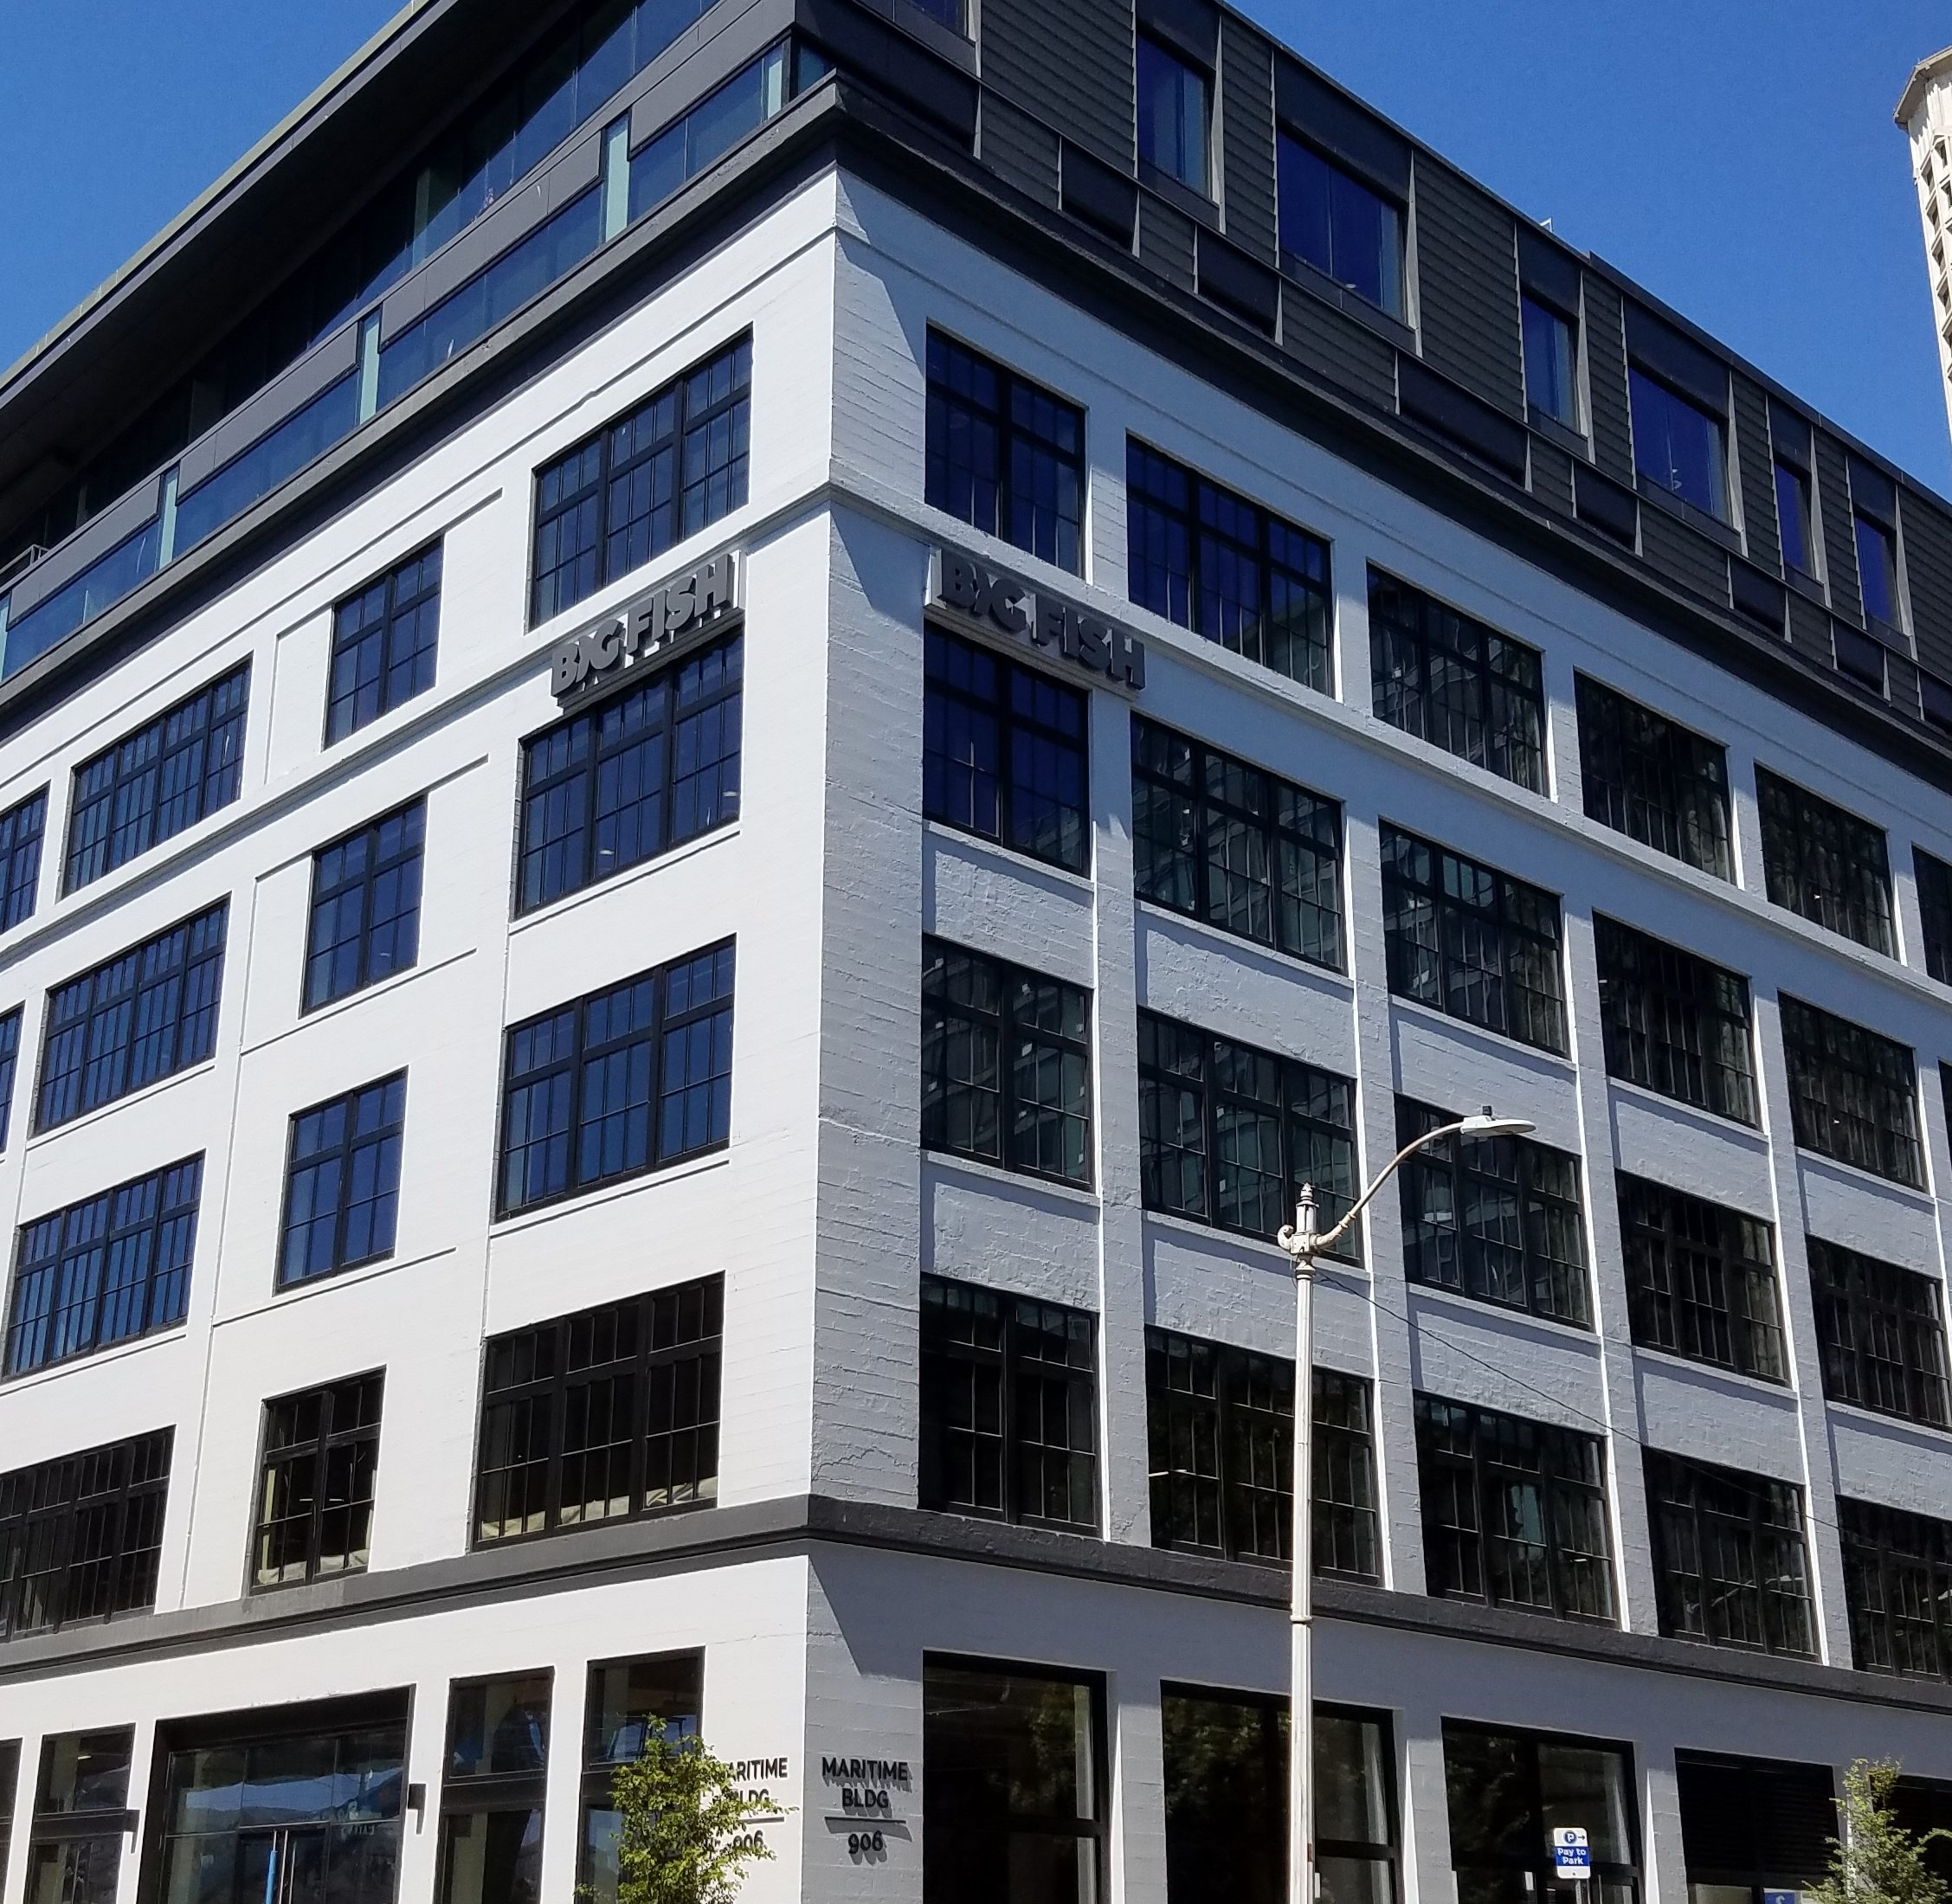 Best Big Fish Games 2020 Big Fish Games migrates to new HQ, with plans to reel in top